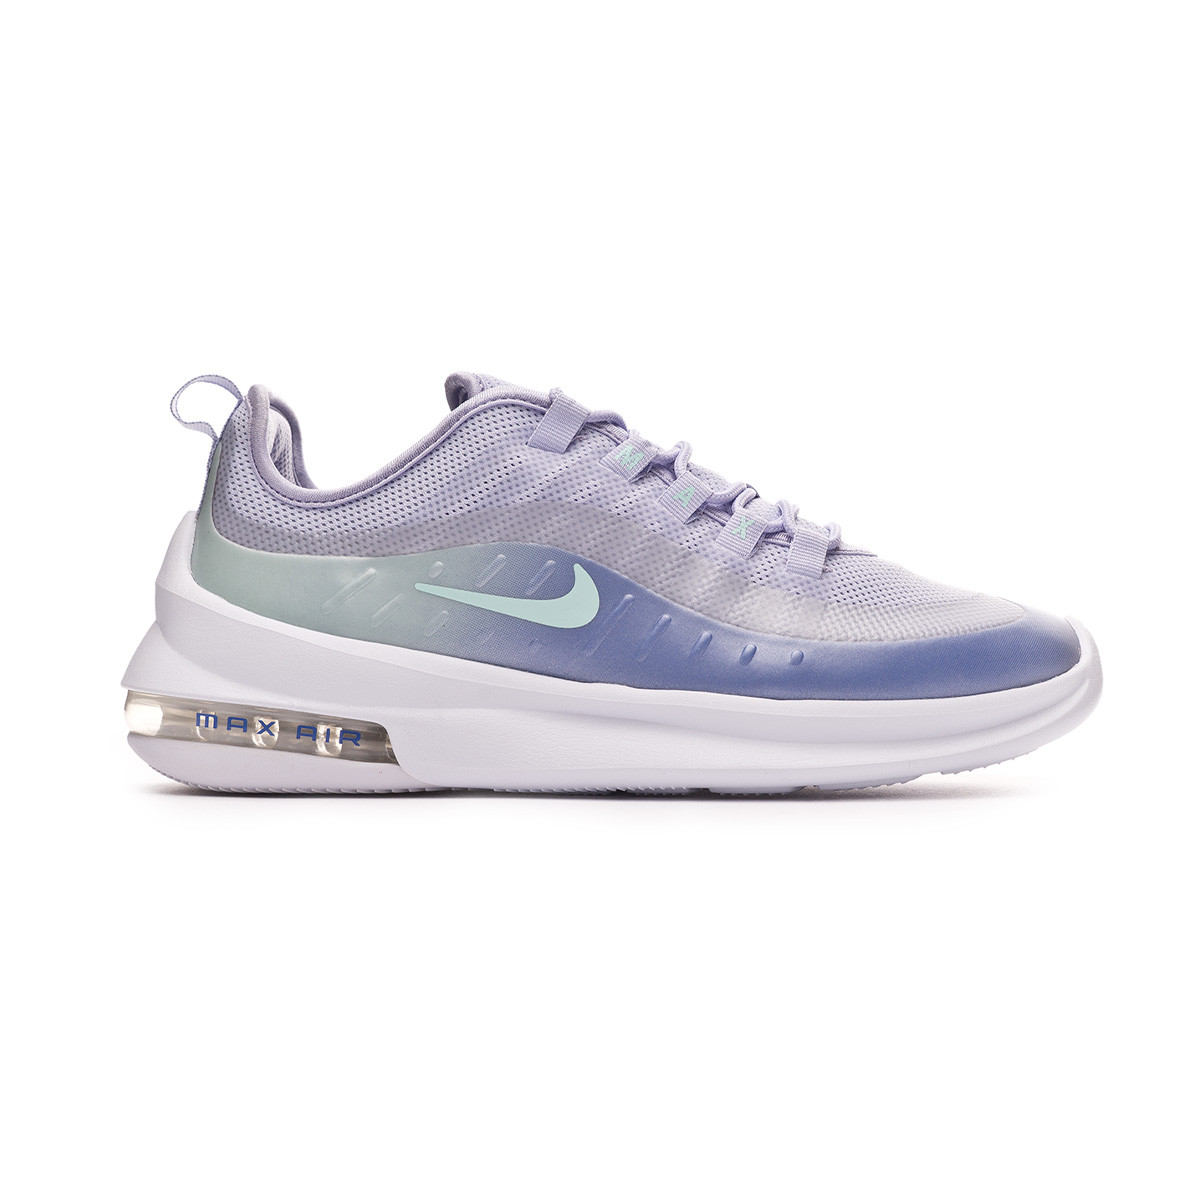 Nike Air Max Axis Premium Mujer Trainers